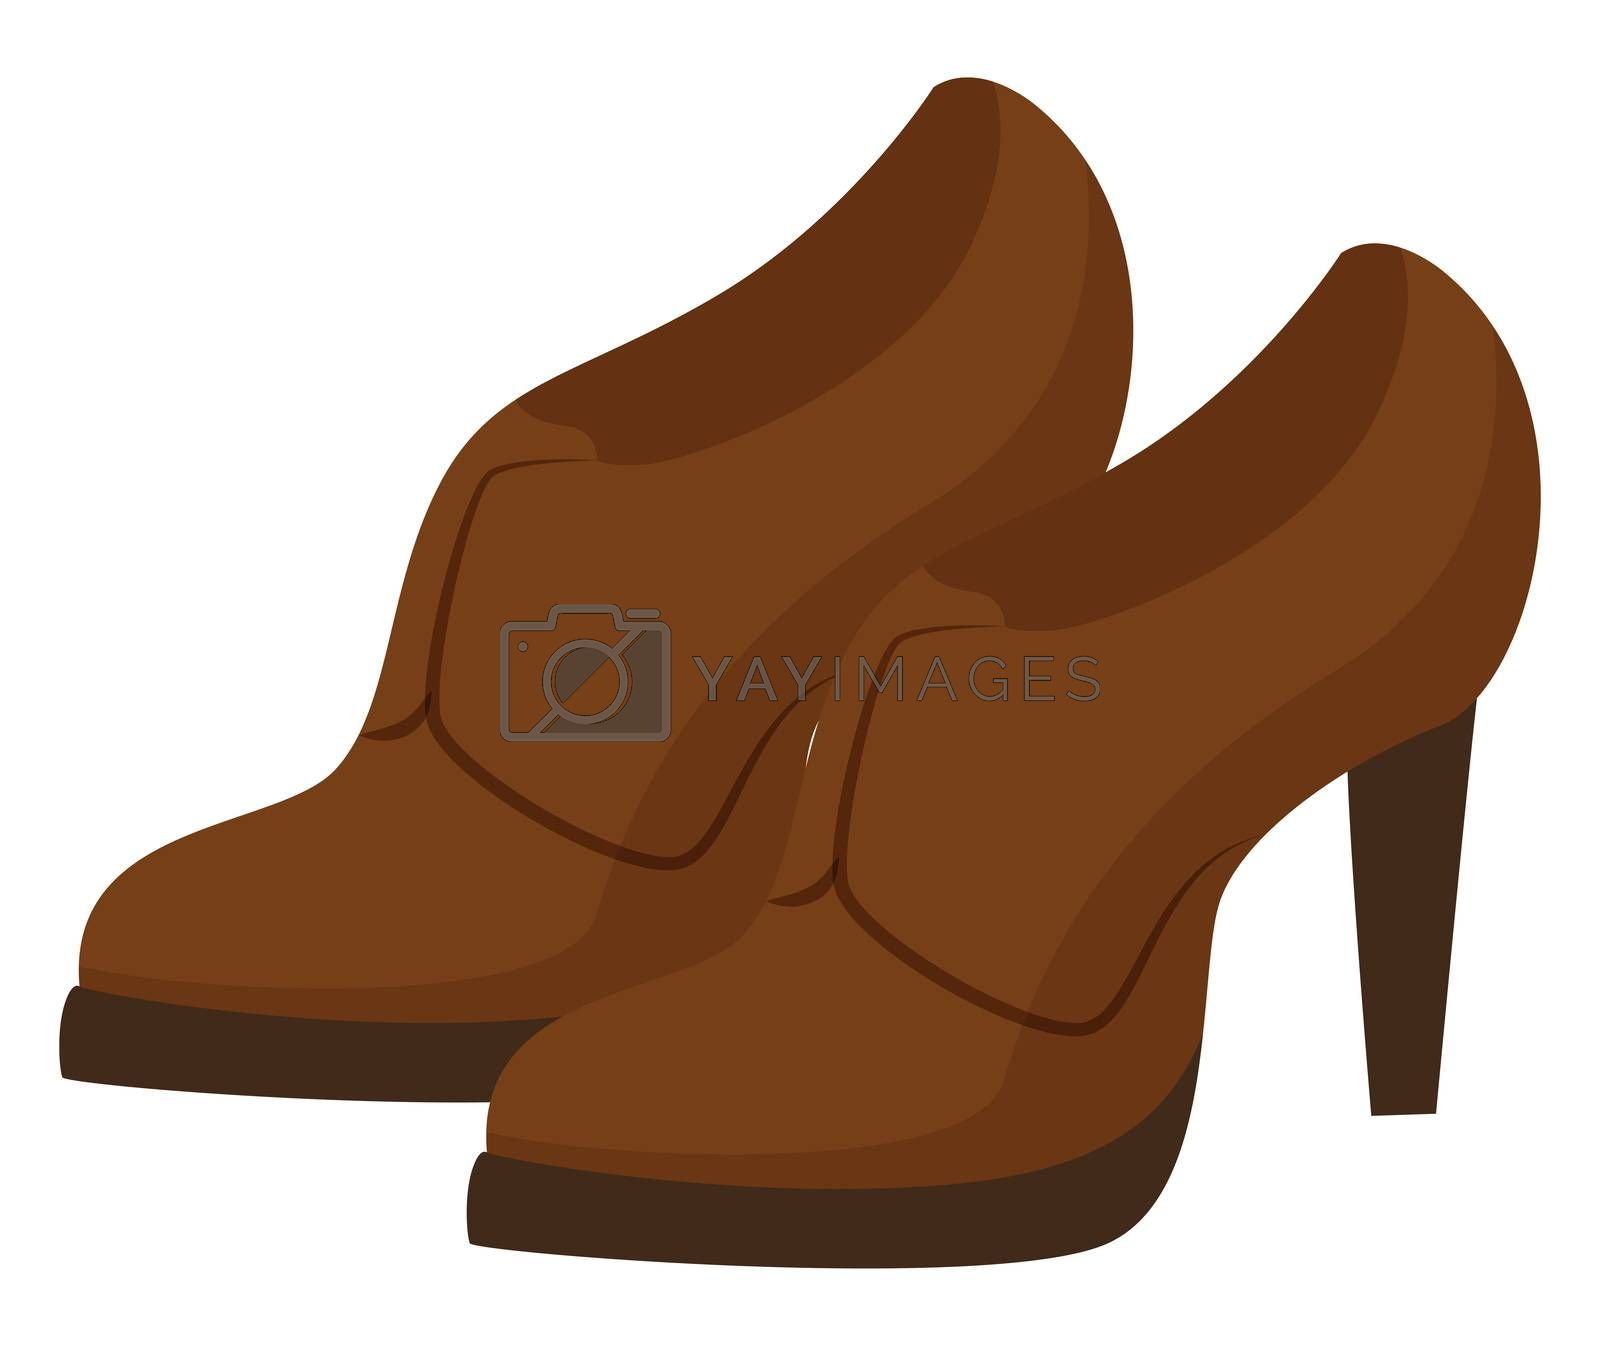 Brown woman heels, illustration, vector on white background